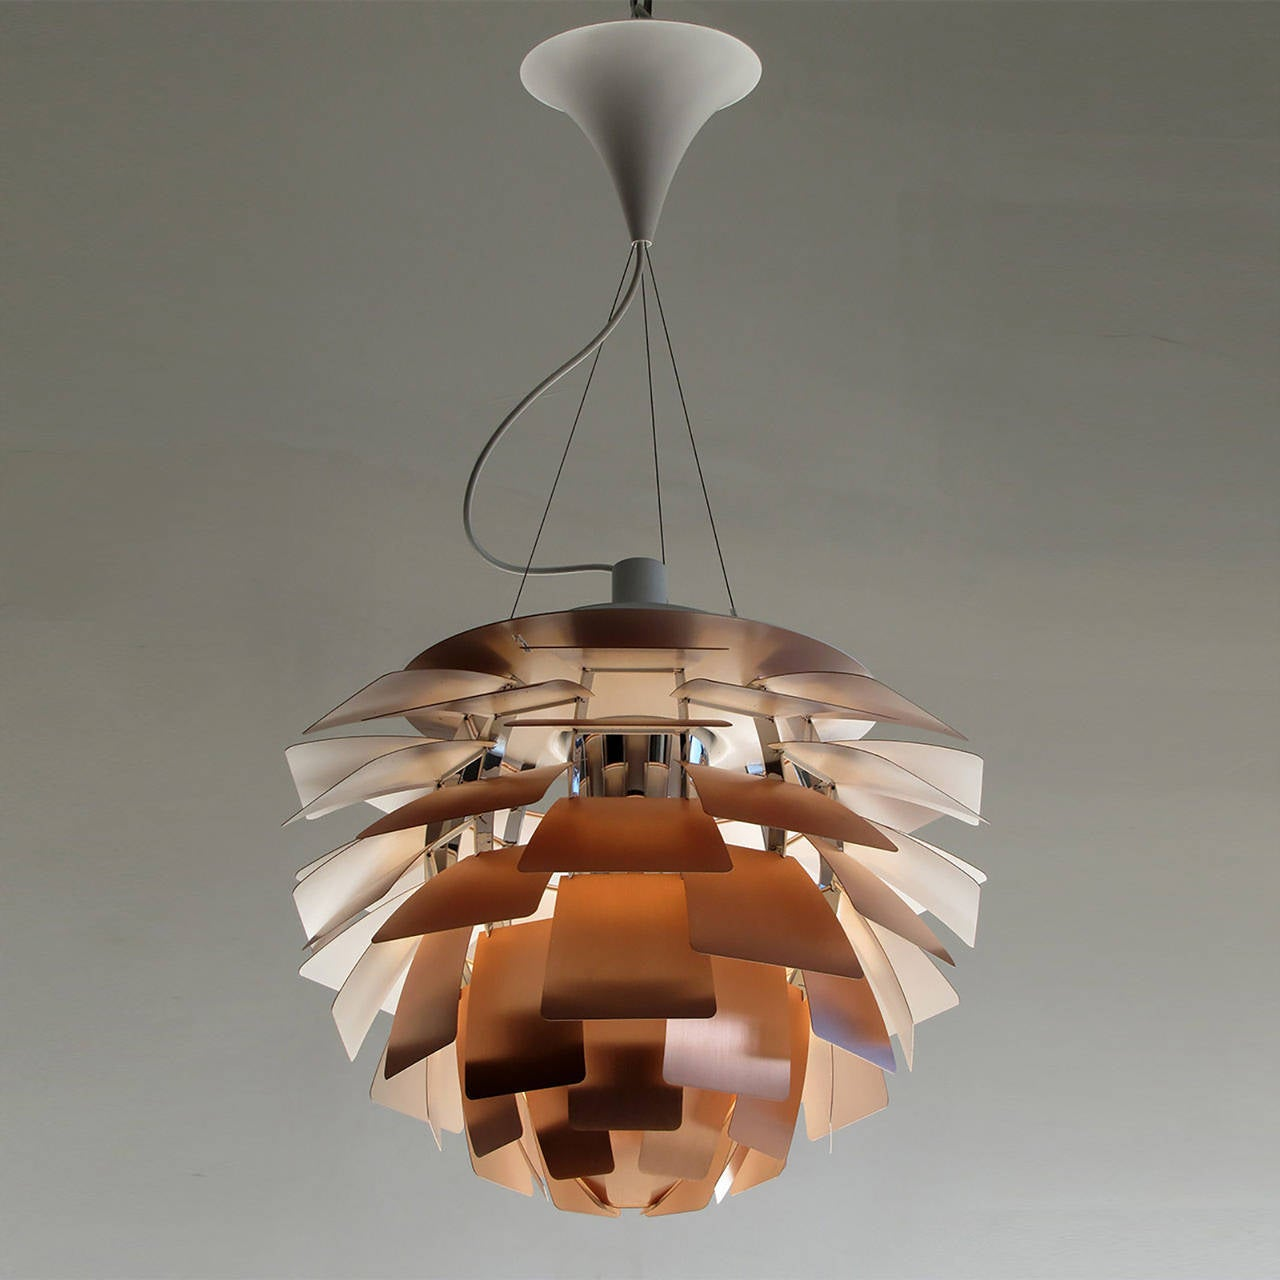 ph artichoke copper lamp by poul henningsen at 1stdibs. Black Bedroom Furniture Sets. Home Design Ideas